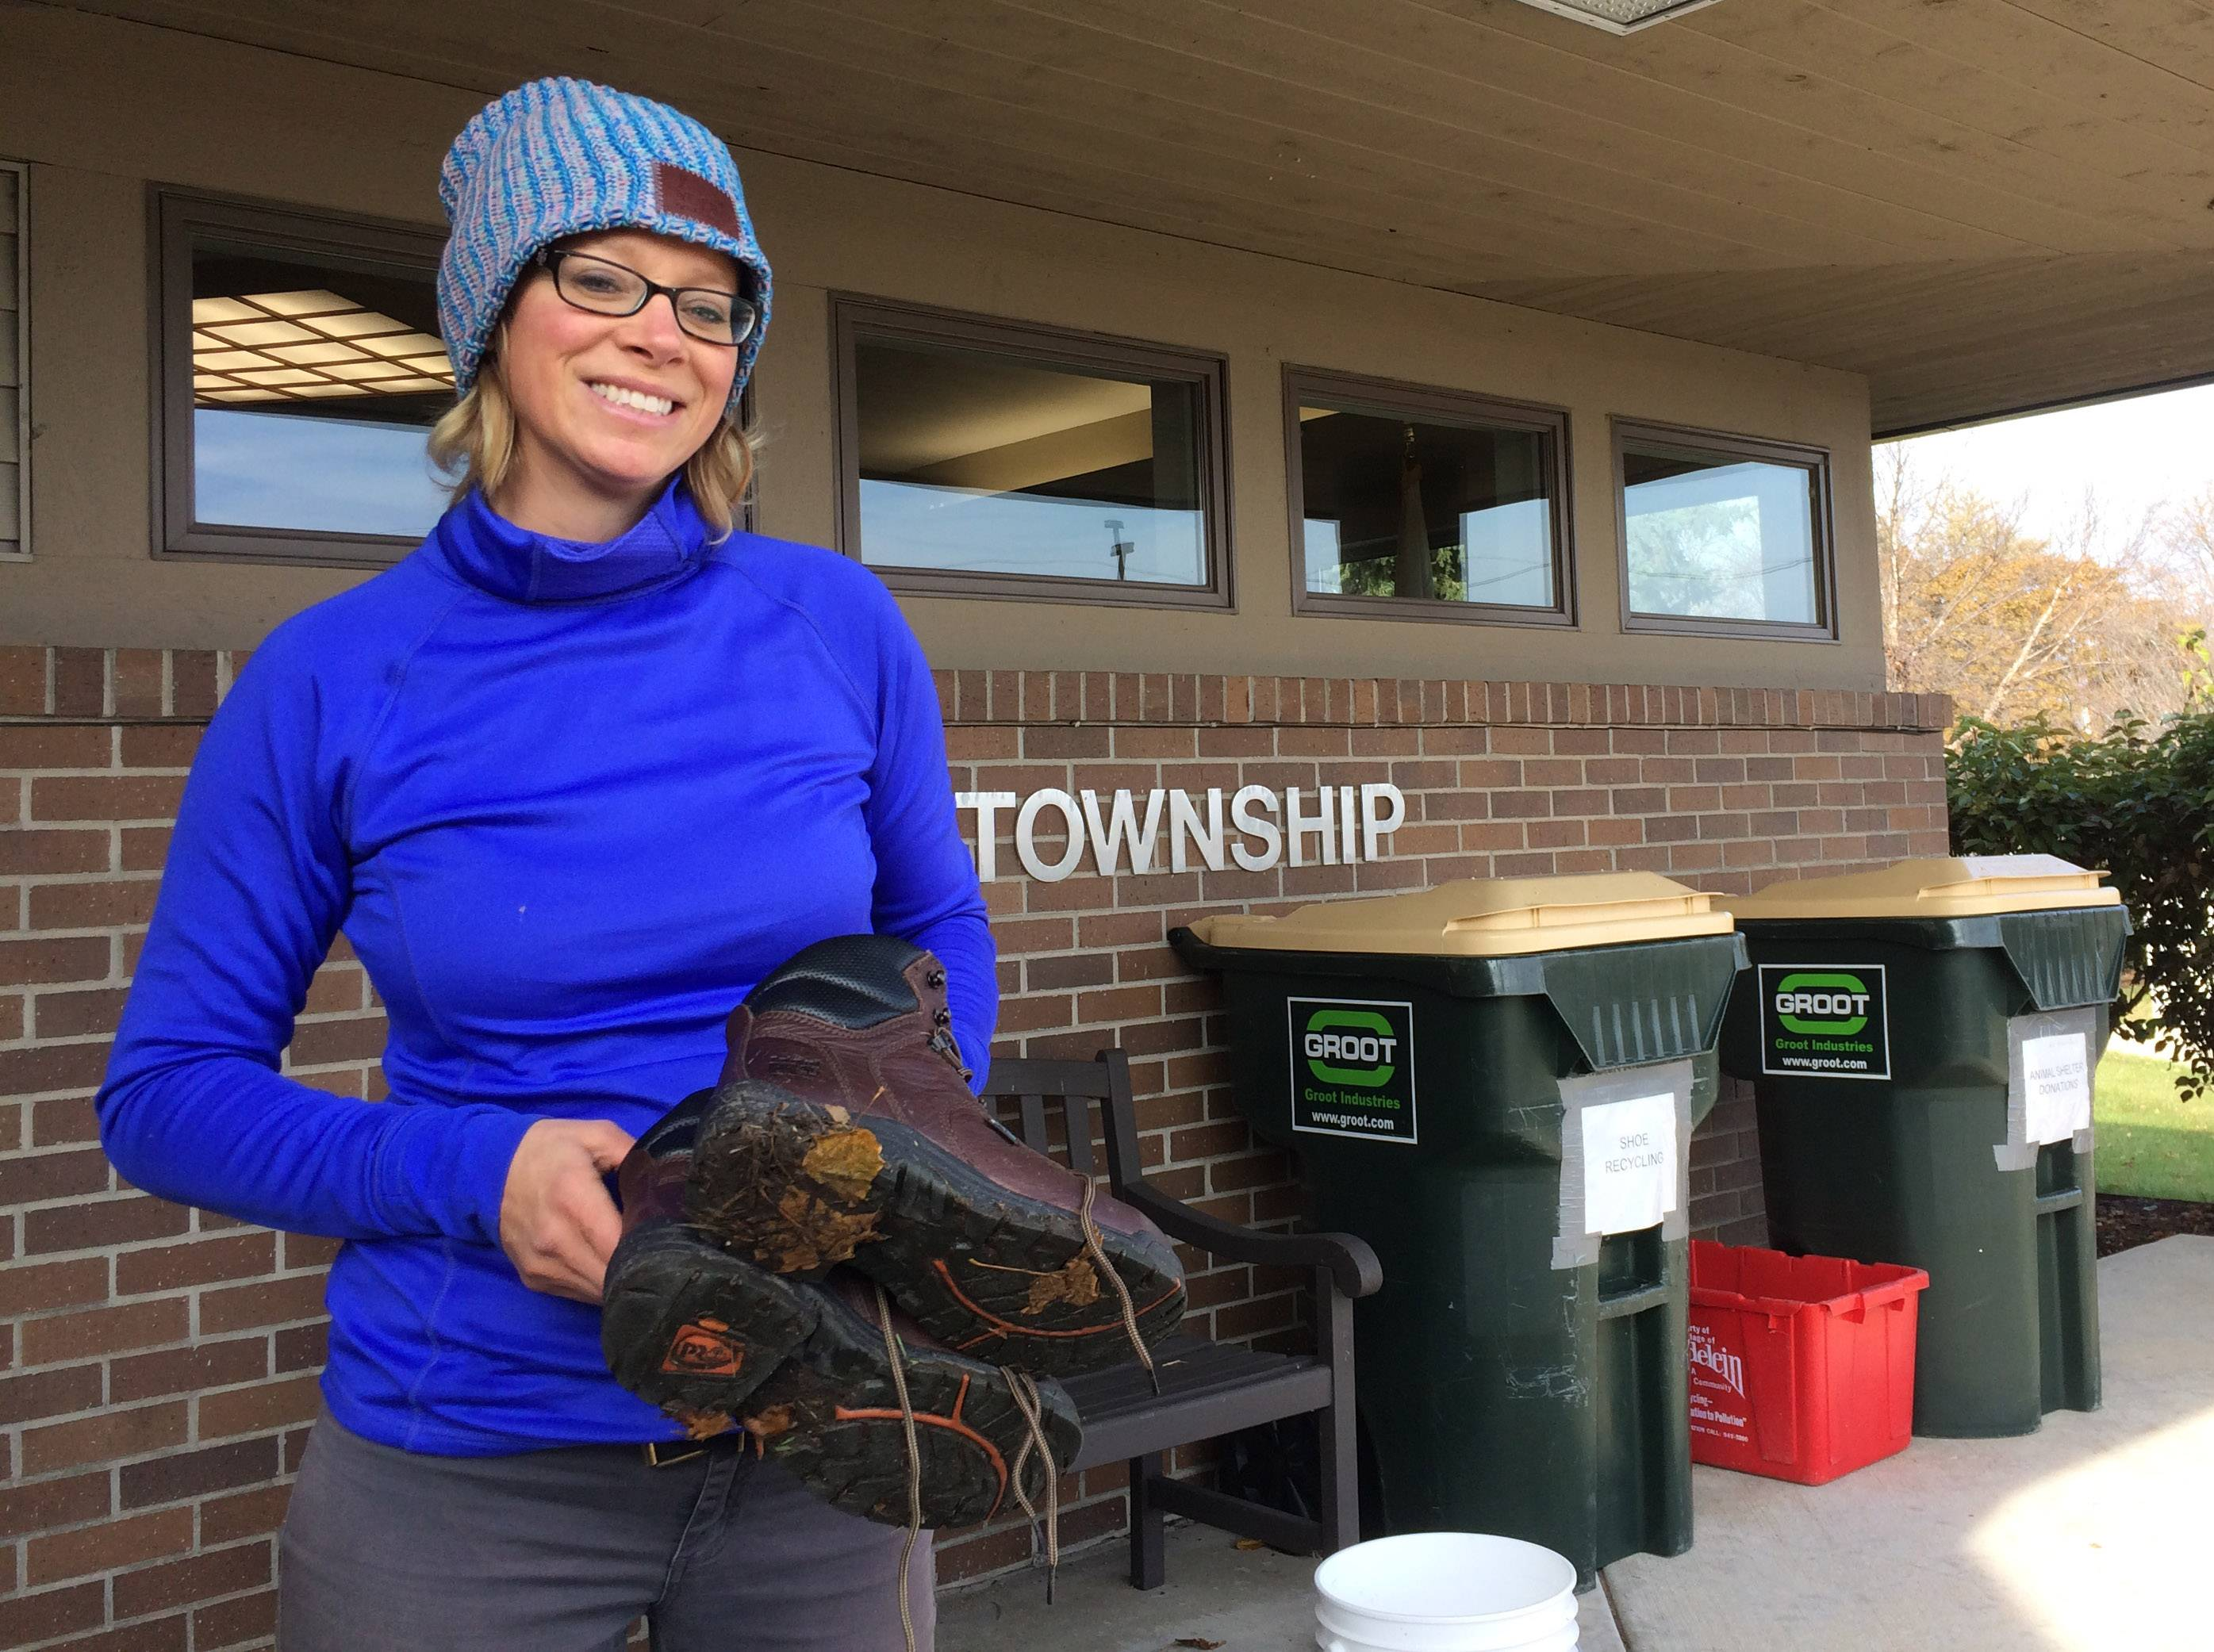 Alicia Dodd has guided the transformation of a weedy patch outside Fremont Township offices into a bountiful garden with dozens of varieties of organic vegetables and herbs. It's also an outdoor classroom for students, scouts and others.